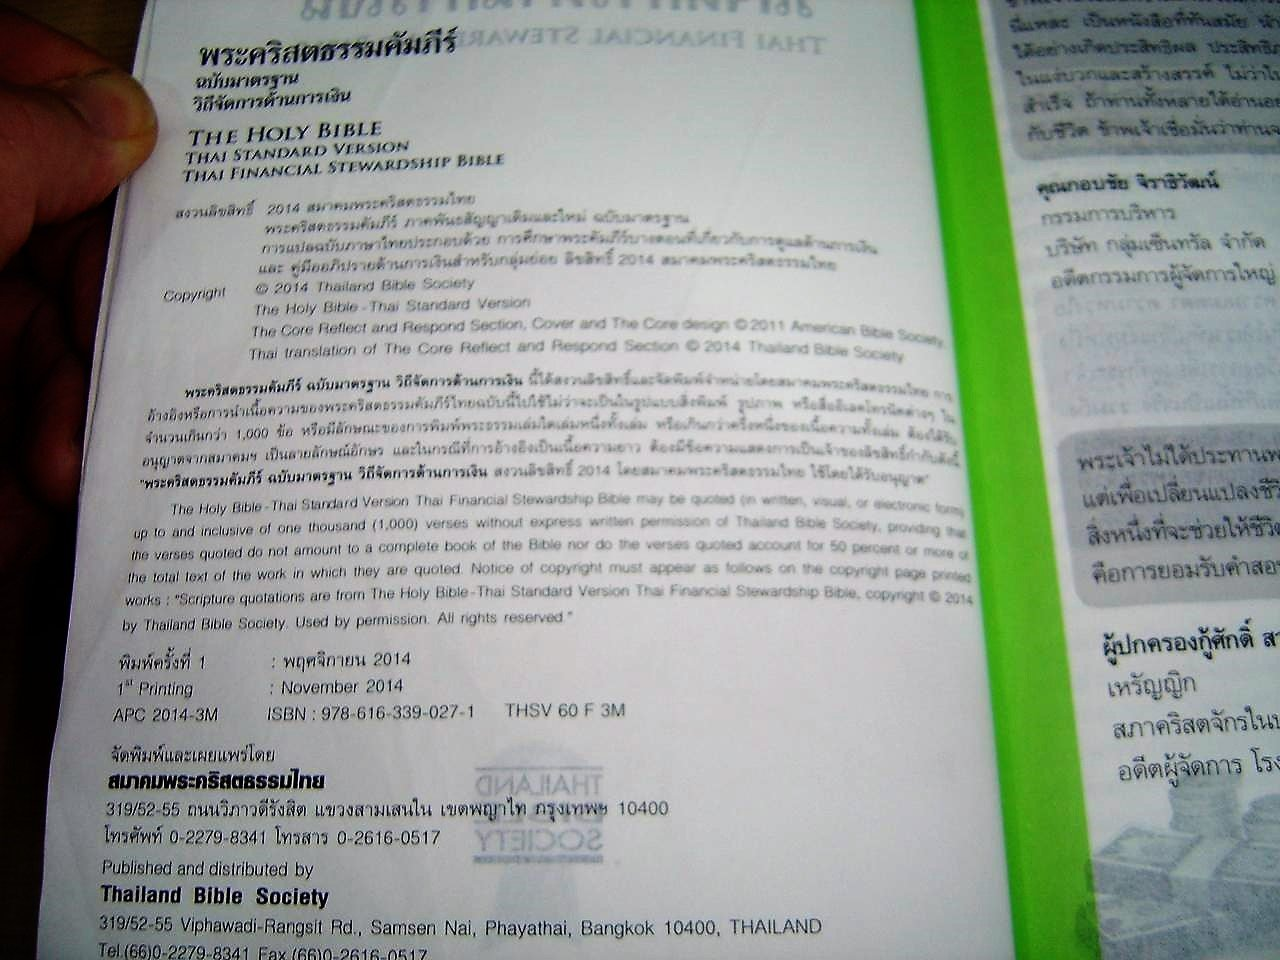 Thai Financial Stewardship Bible, Thai Standard Version